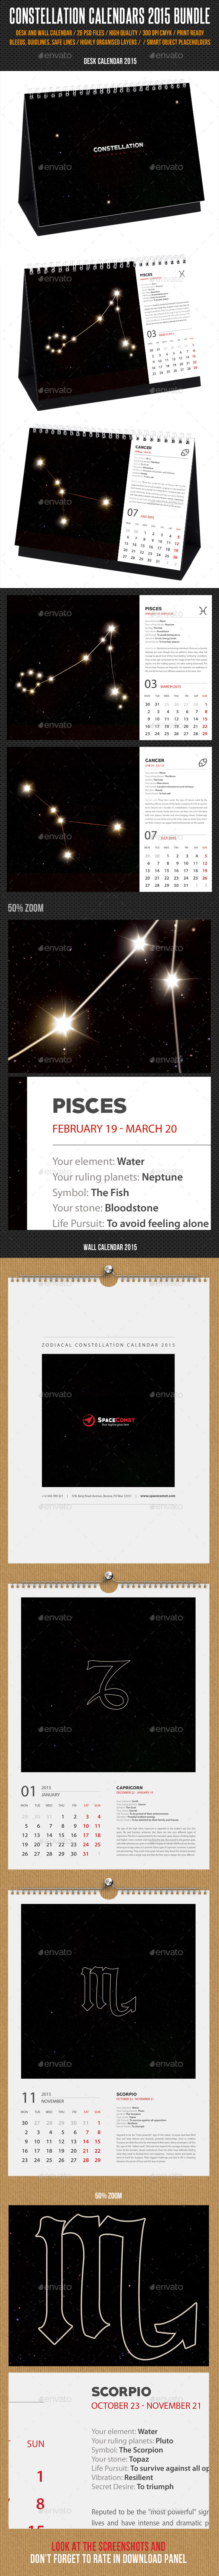 GraphicRiver Constellation Calendars 2015 Bundle 9963534